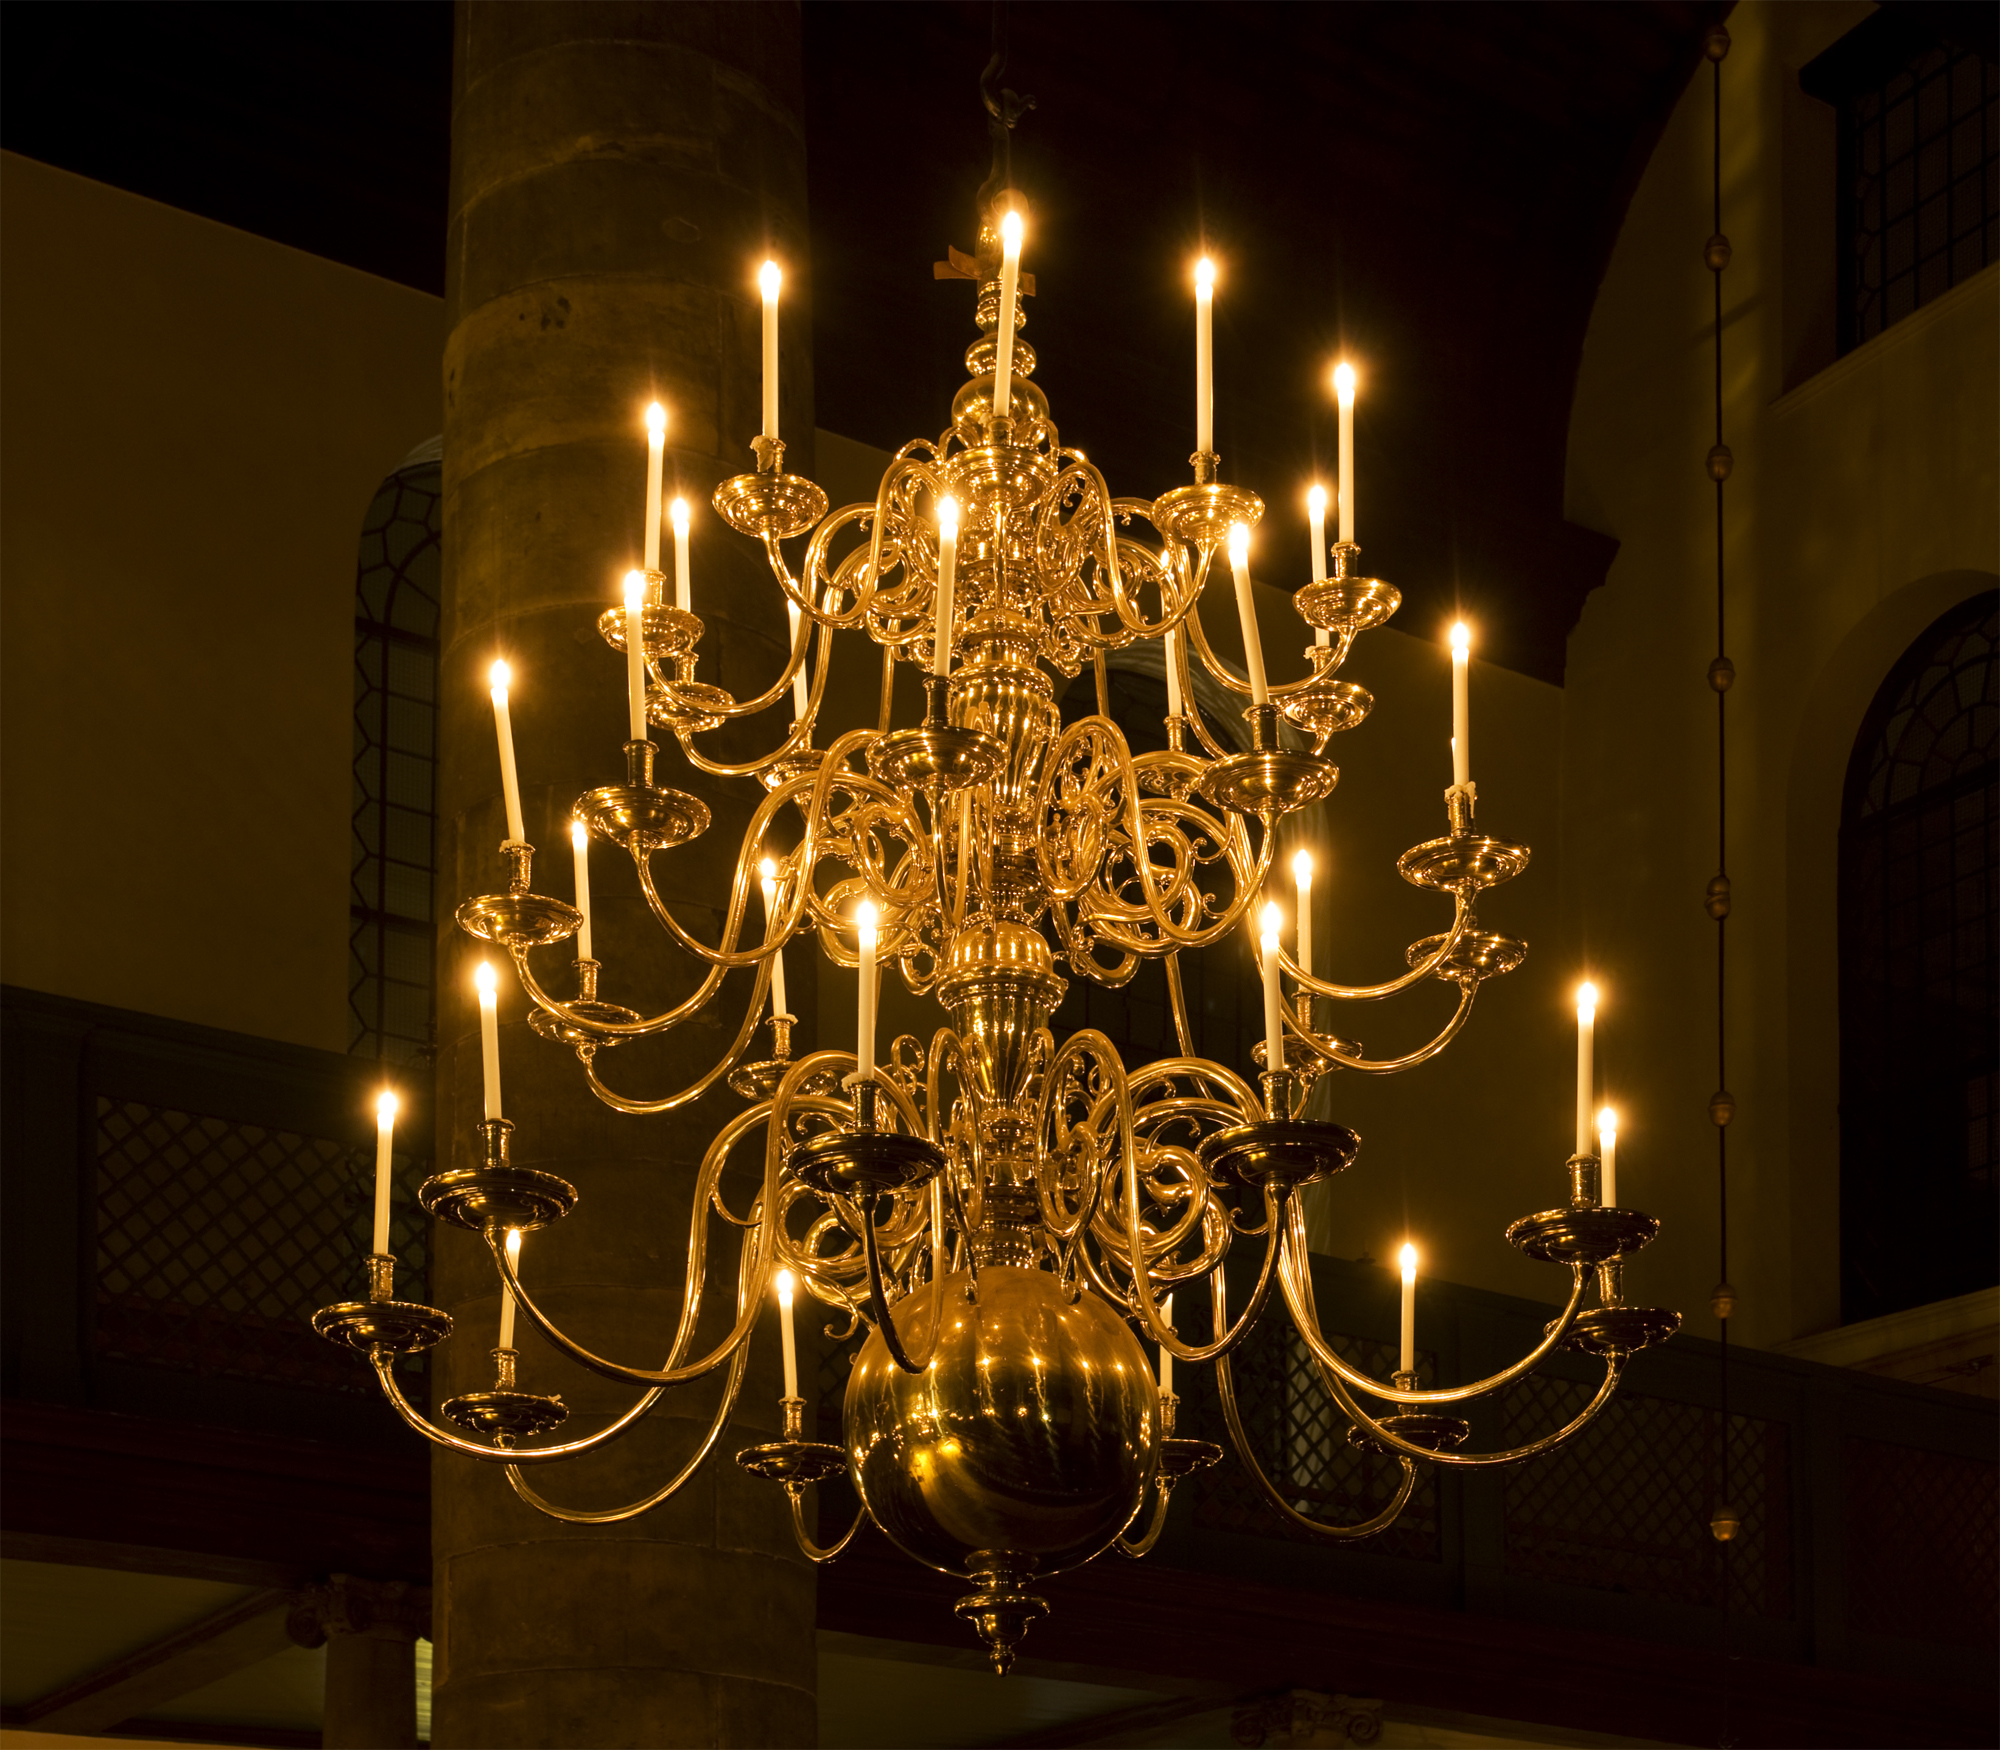 Meaning of chandelier in english musethecollective an antique chandelier kroonluchteresnogaamsterdam jpg 12 photos gallery of chandelier definition crafts arubaitofo Gallery